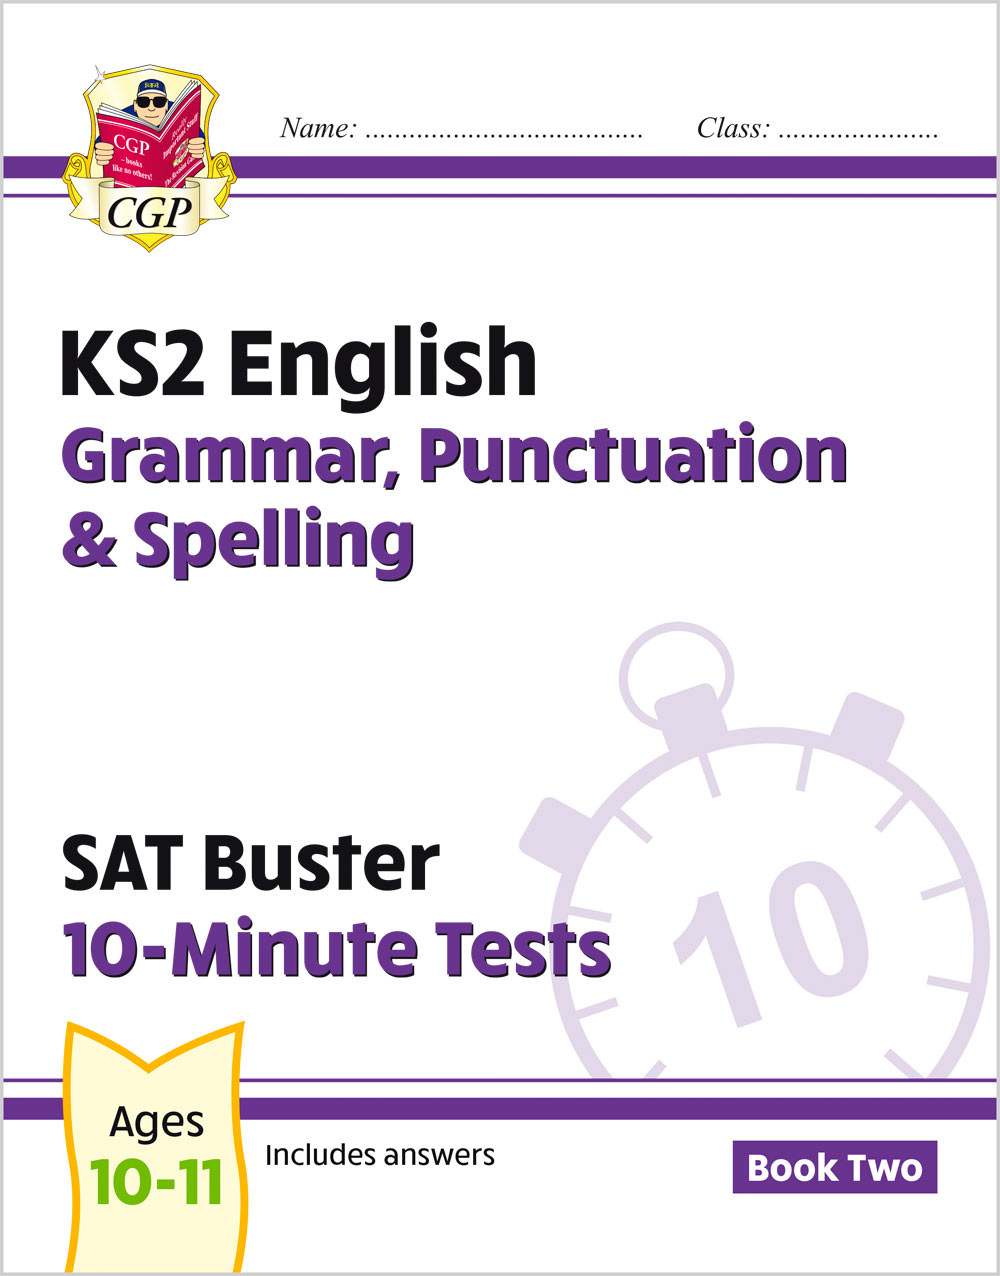 EXPG222 - New KS2 English SAT Buster 10-Minute Tests: Grammar, Punctuation & Spelling - Book 2 (for